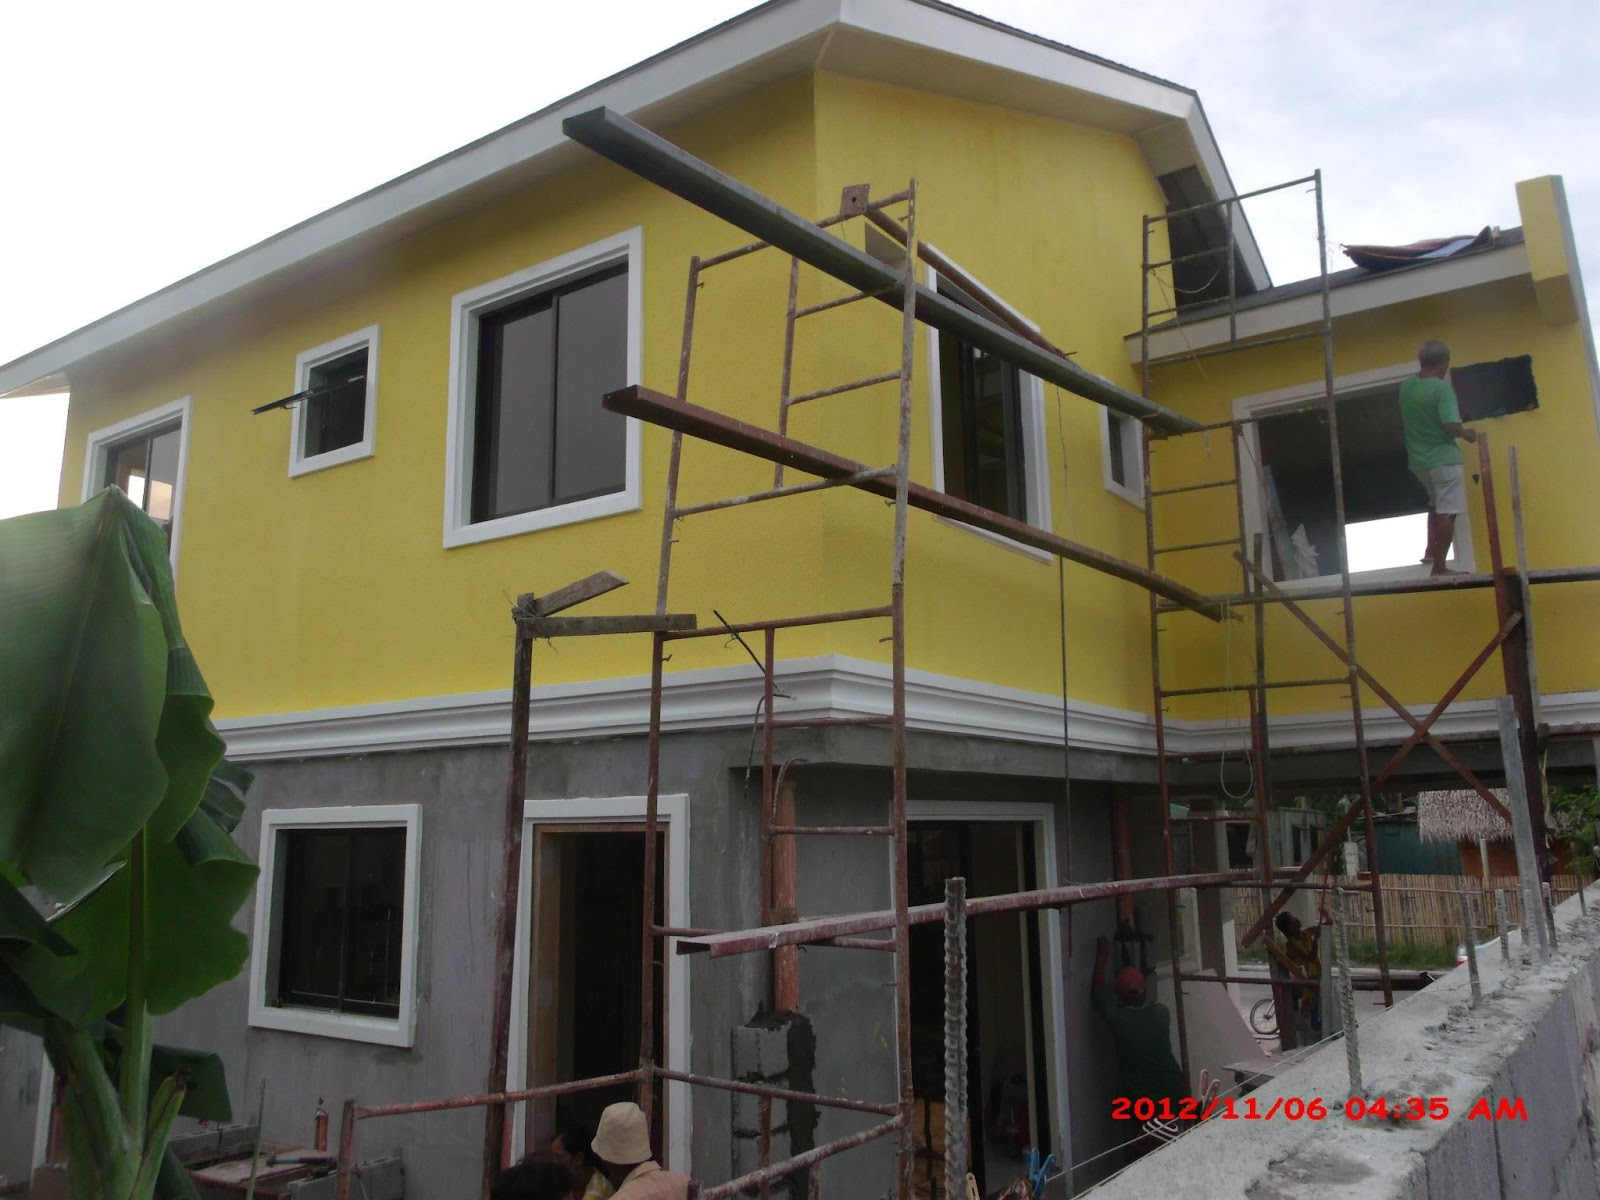 new houses to build new houses build build a new house new custom home build new house build a new house real estate philippines house design house designs philippines house design phillipine house design home design modern house design iloilo